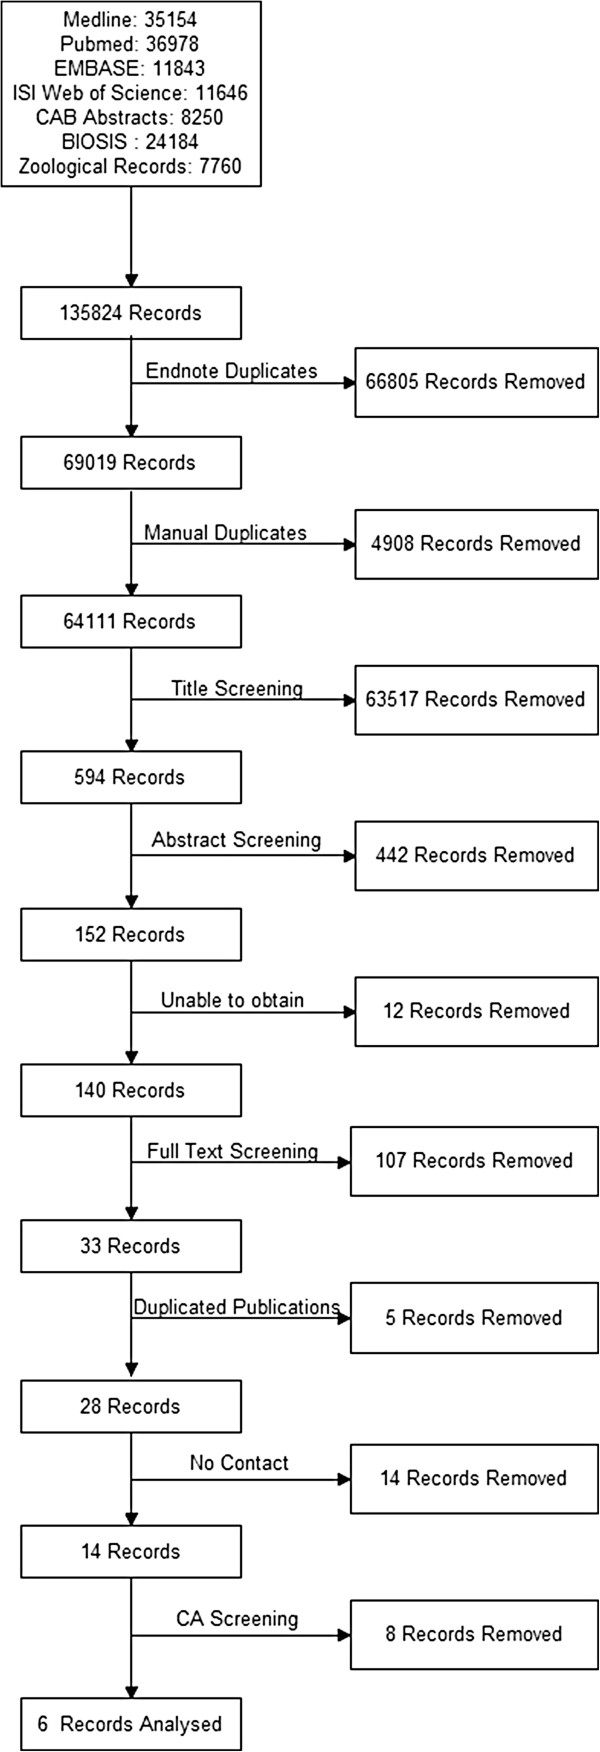 Flow diagram showing the total number of records